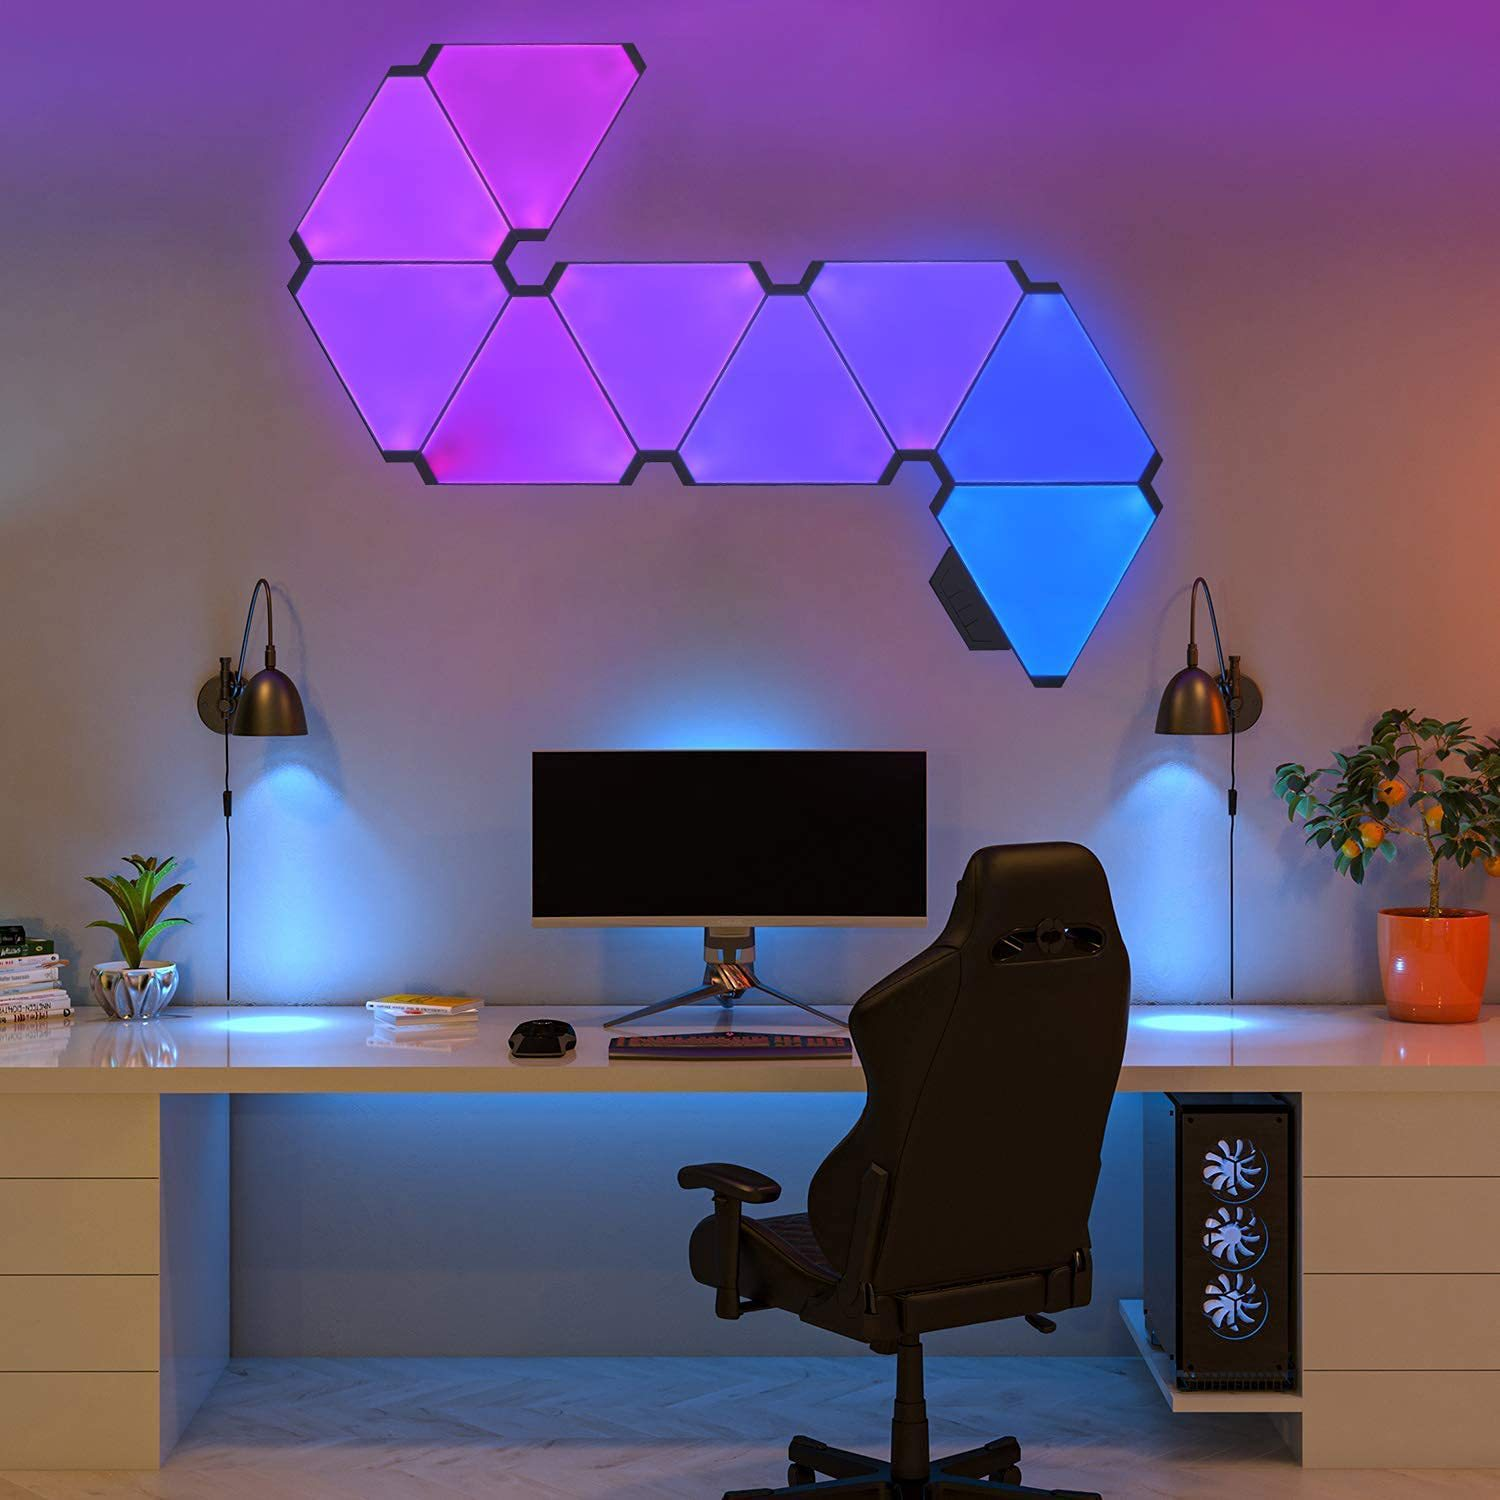 Triangle Lights RGB Colorful Wall-Mounted LED Light APP Controllable Triangle Gaming Lights Perfect Decor for Room, Living Room